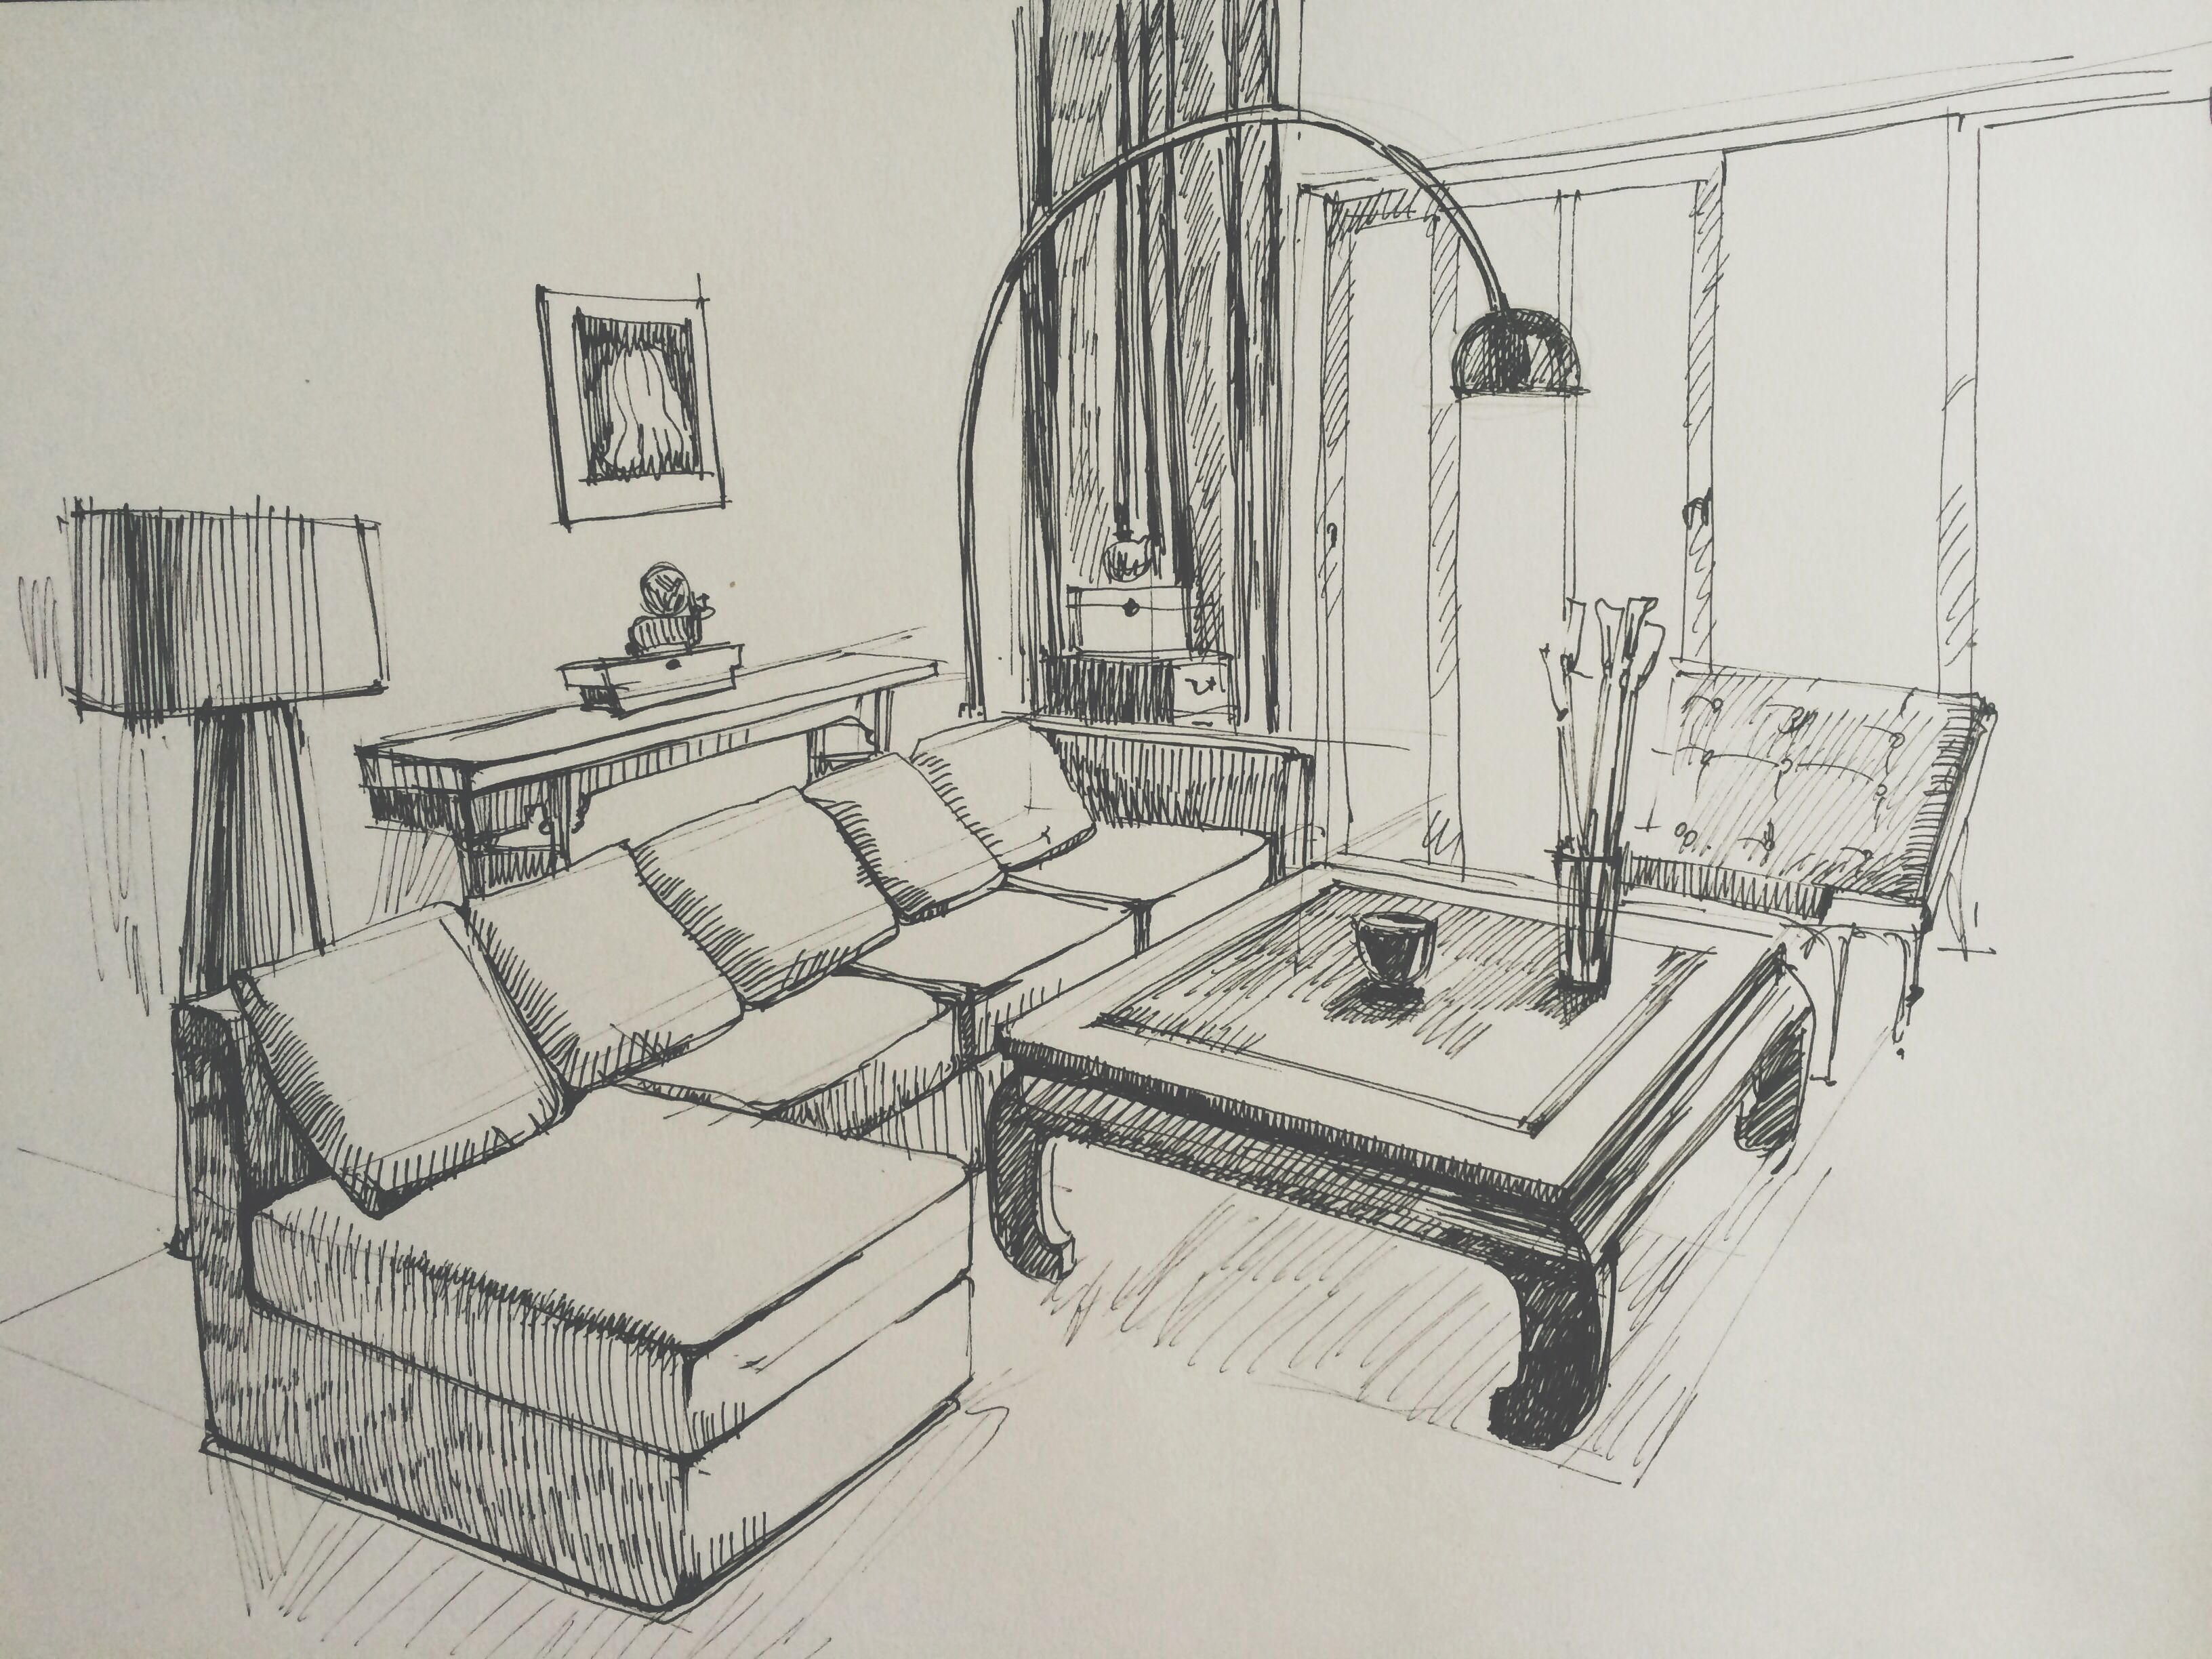 living room sketch | interior design sketches, interior